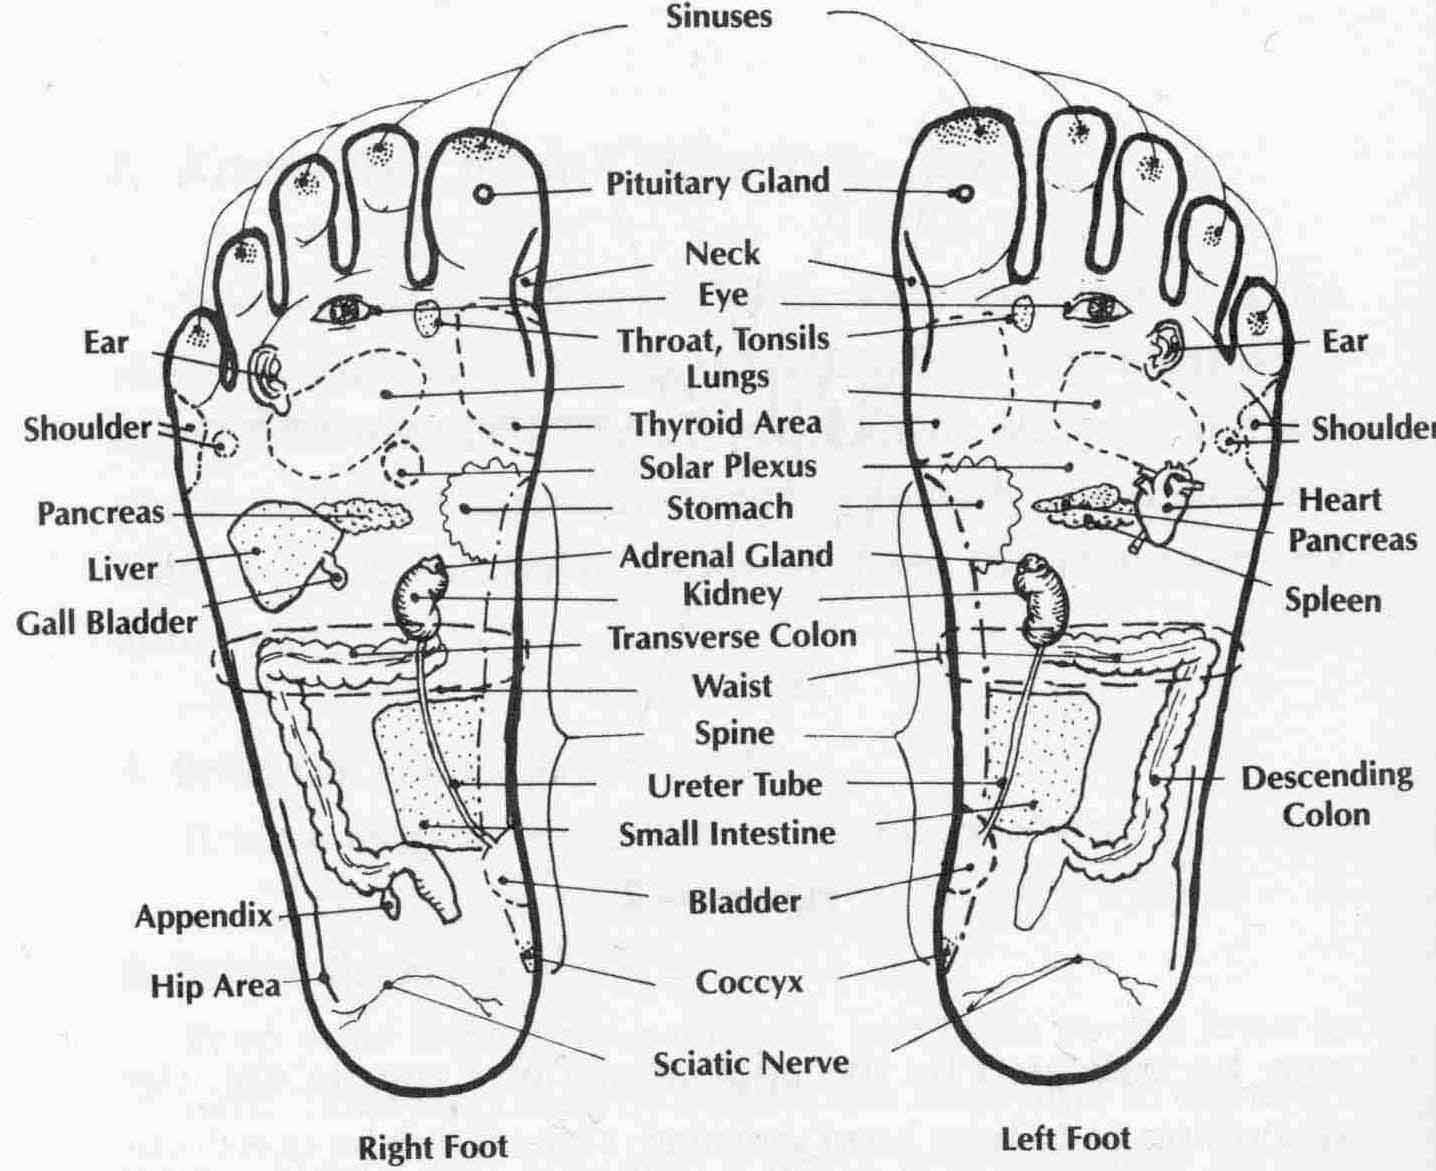 Foot Nerve Endings Diagram How Do You Draw A Family Tree Science Update Reflexology